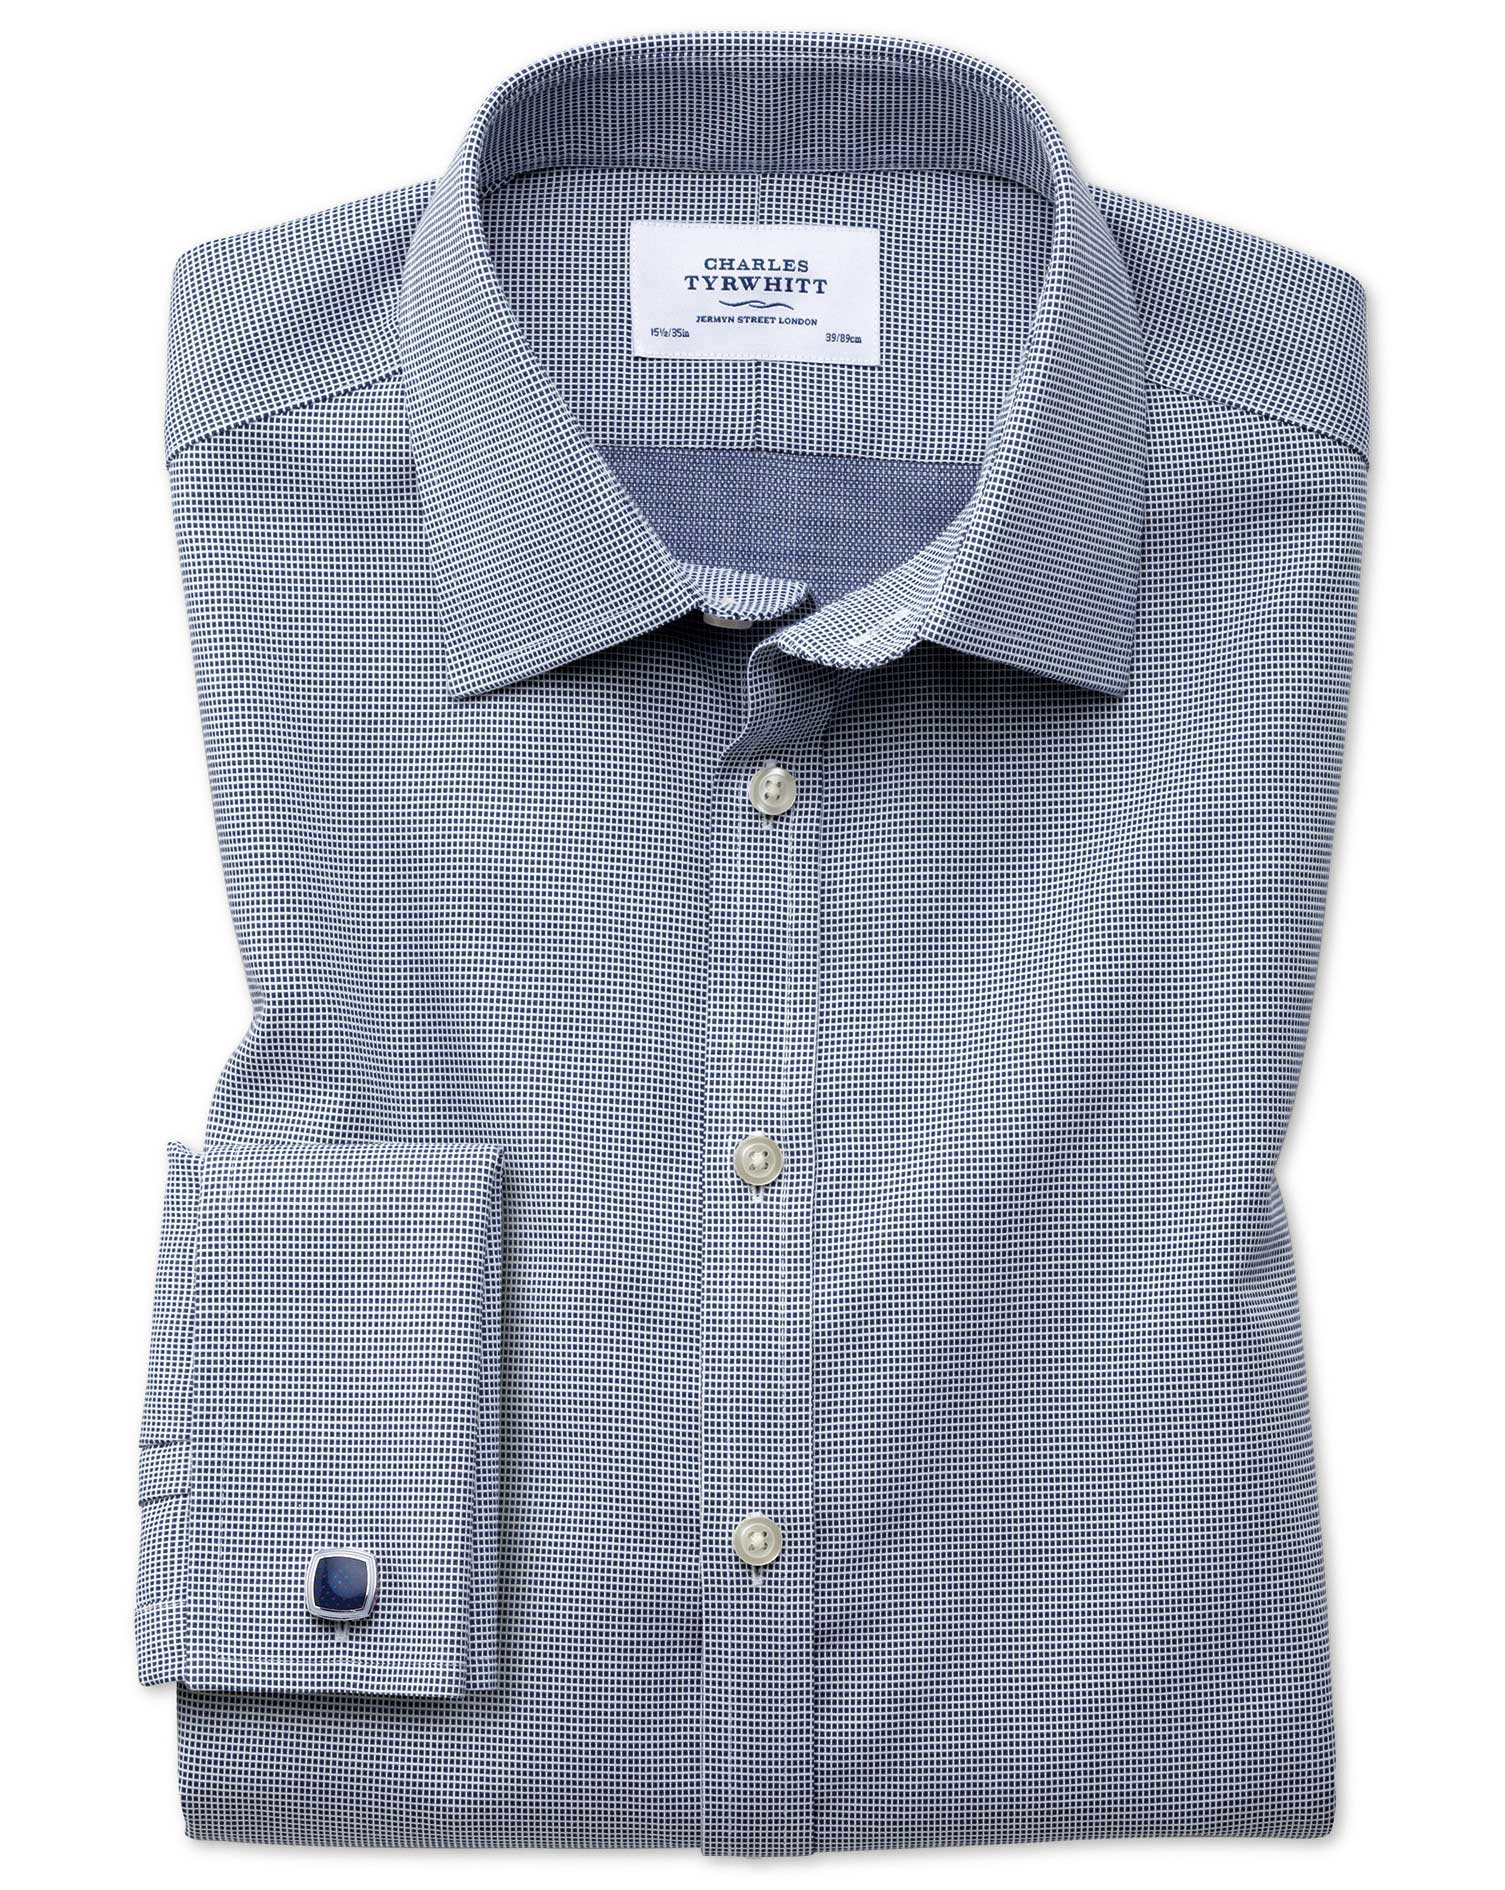 Slim Fit Non-Iron Square Weave Navy Blue Cotton Formal Shirt Double Cuff Size 17/34 by Charles Tyrwh